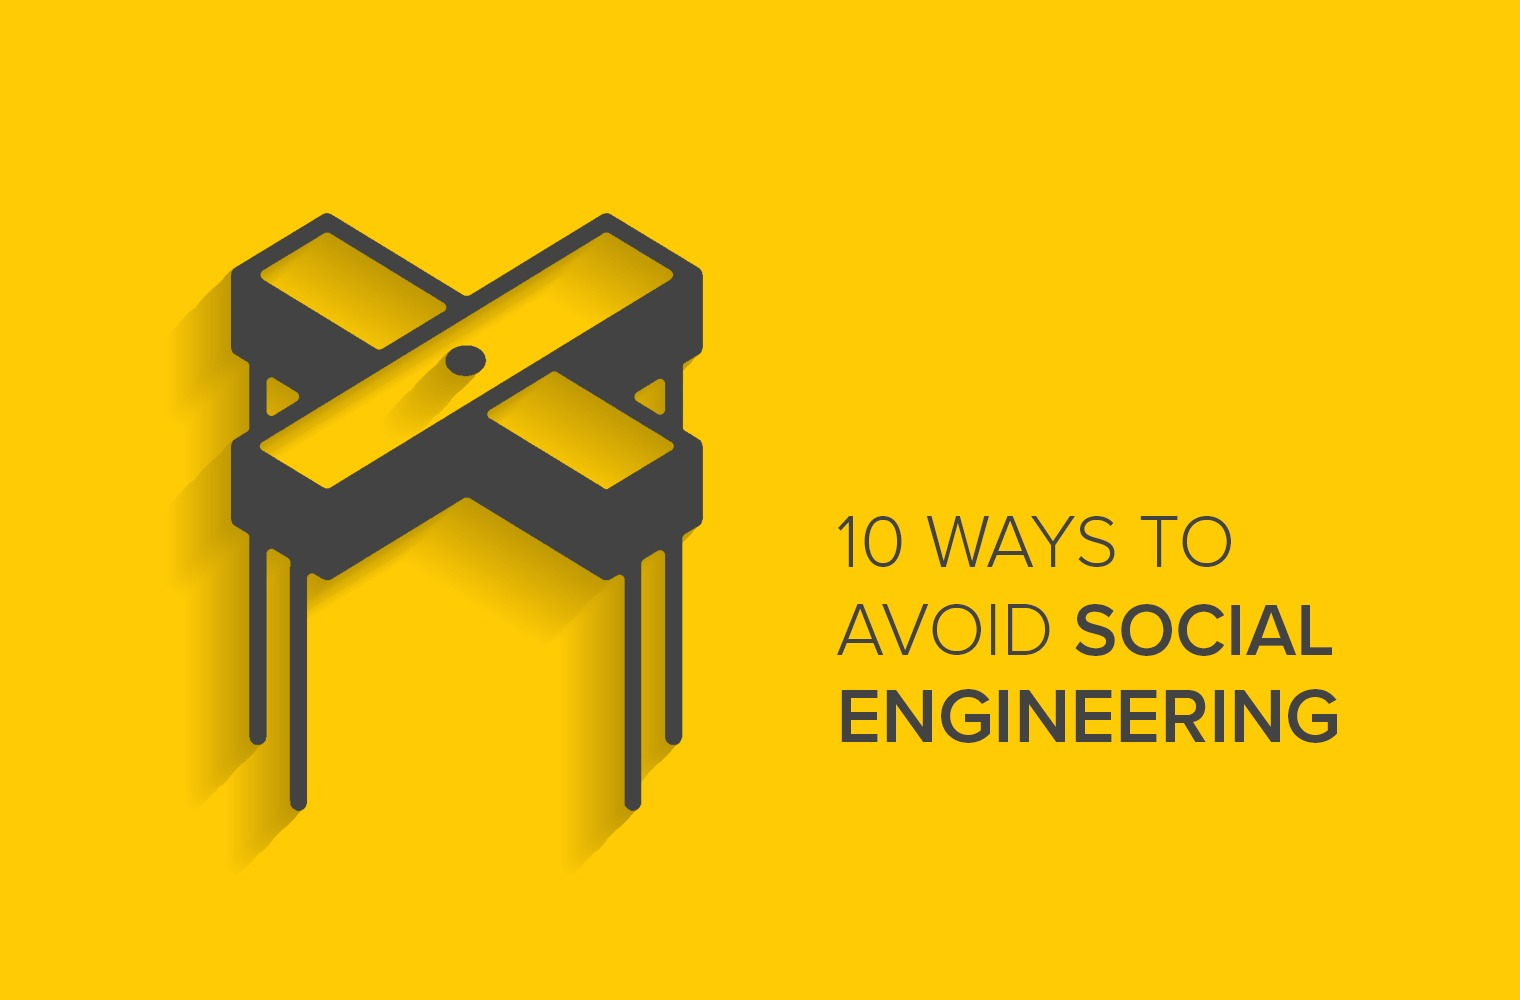 10 Ways to Avoid Social Engineering